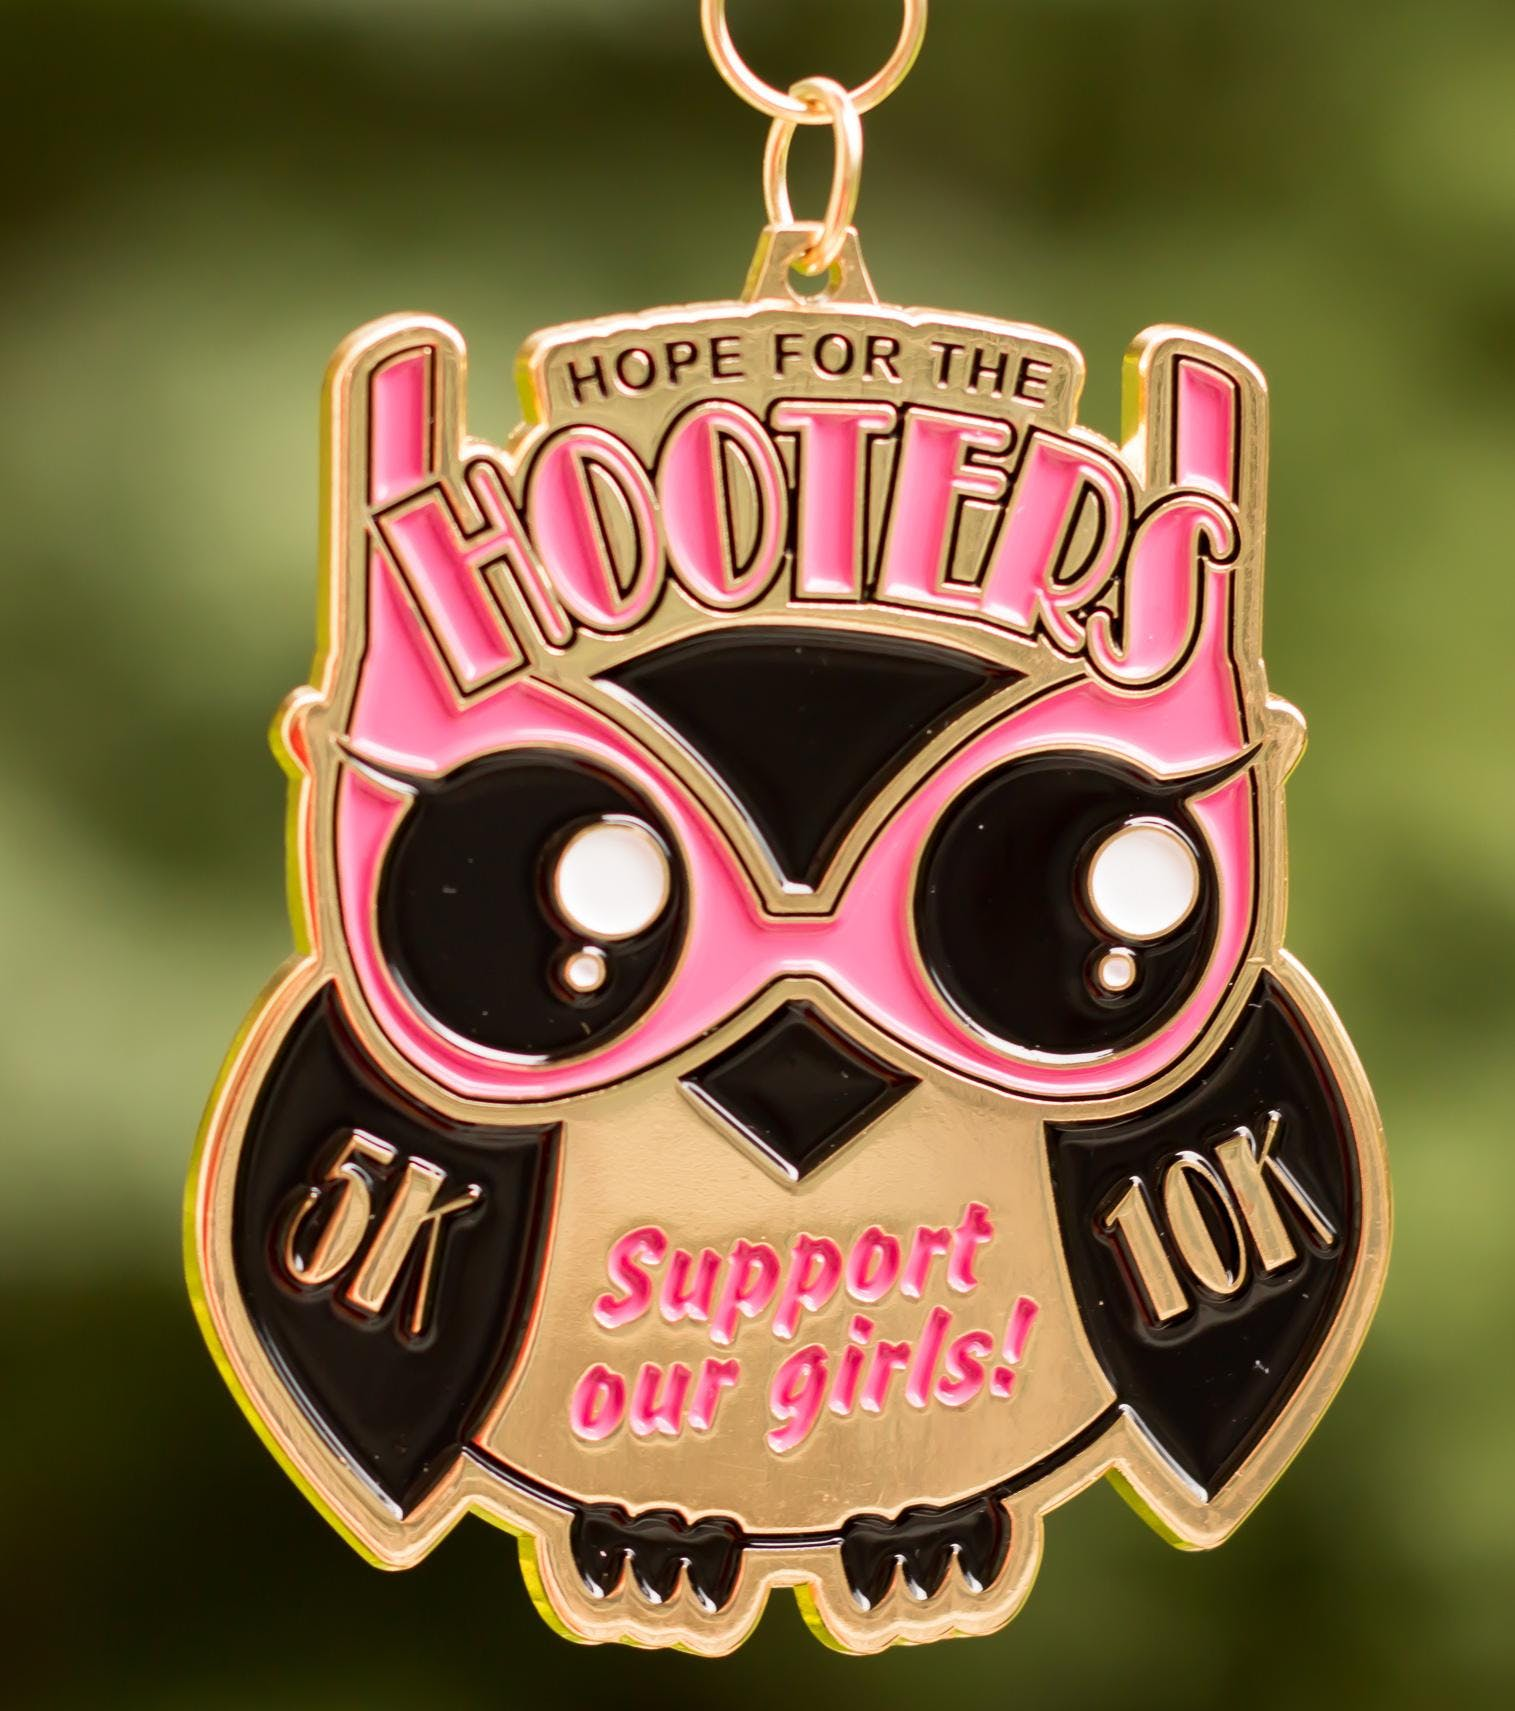 Now Only $10! Support Our Girls: Hope for the Hooters 5K & 10K- Tucson